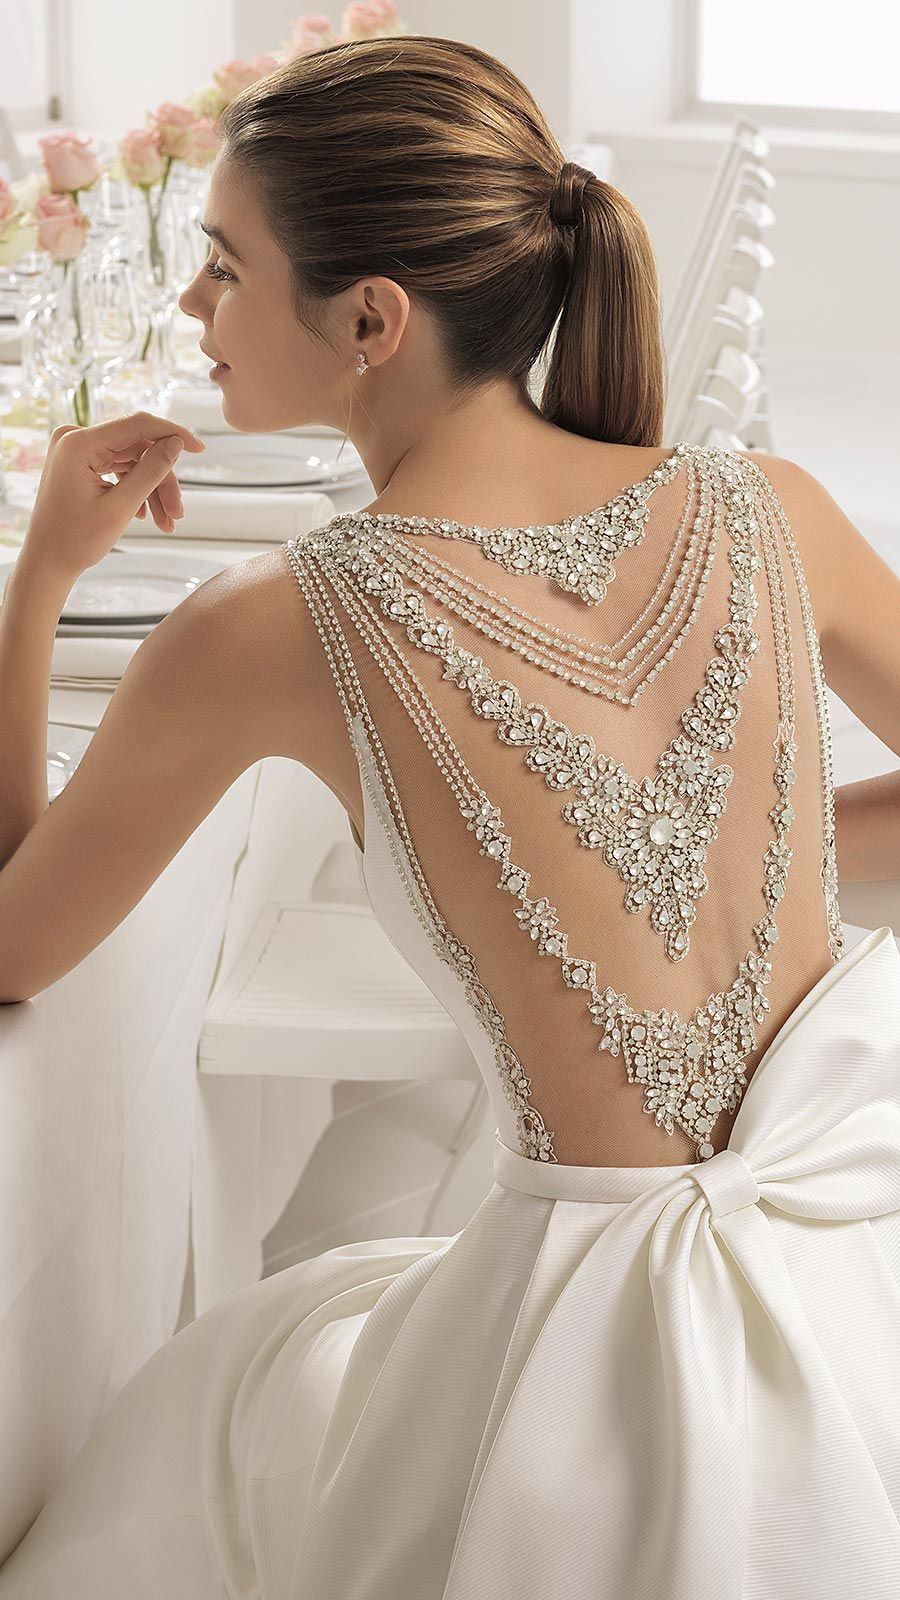 Wedding dress with bow on back  BOMBAY by Aire Barcelona Timeless with a modern twist this elegant